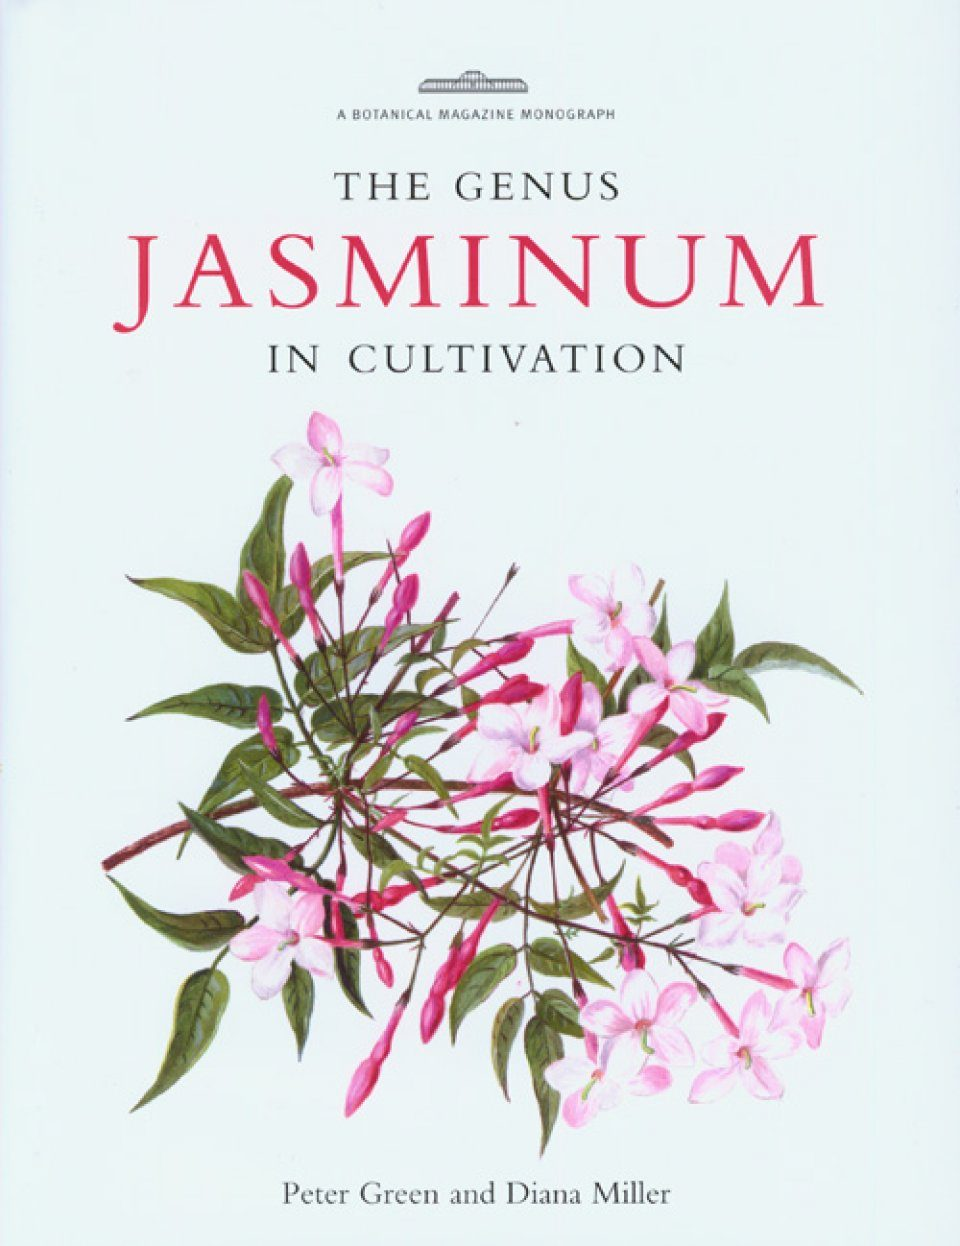 The Genus Jasminum in Cultivation